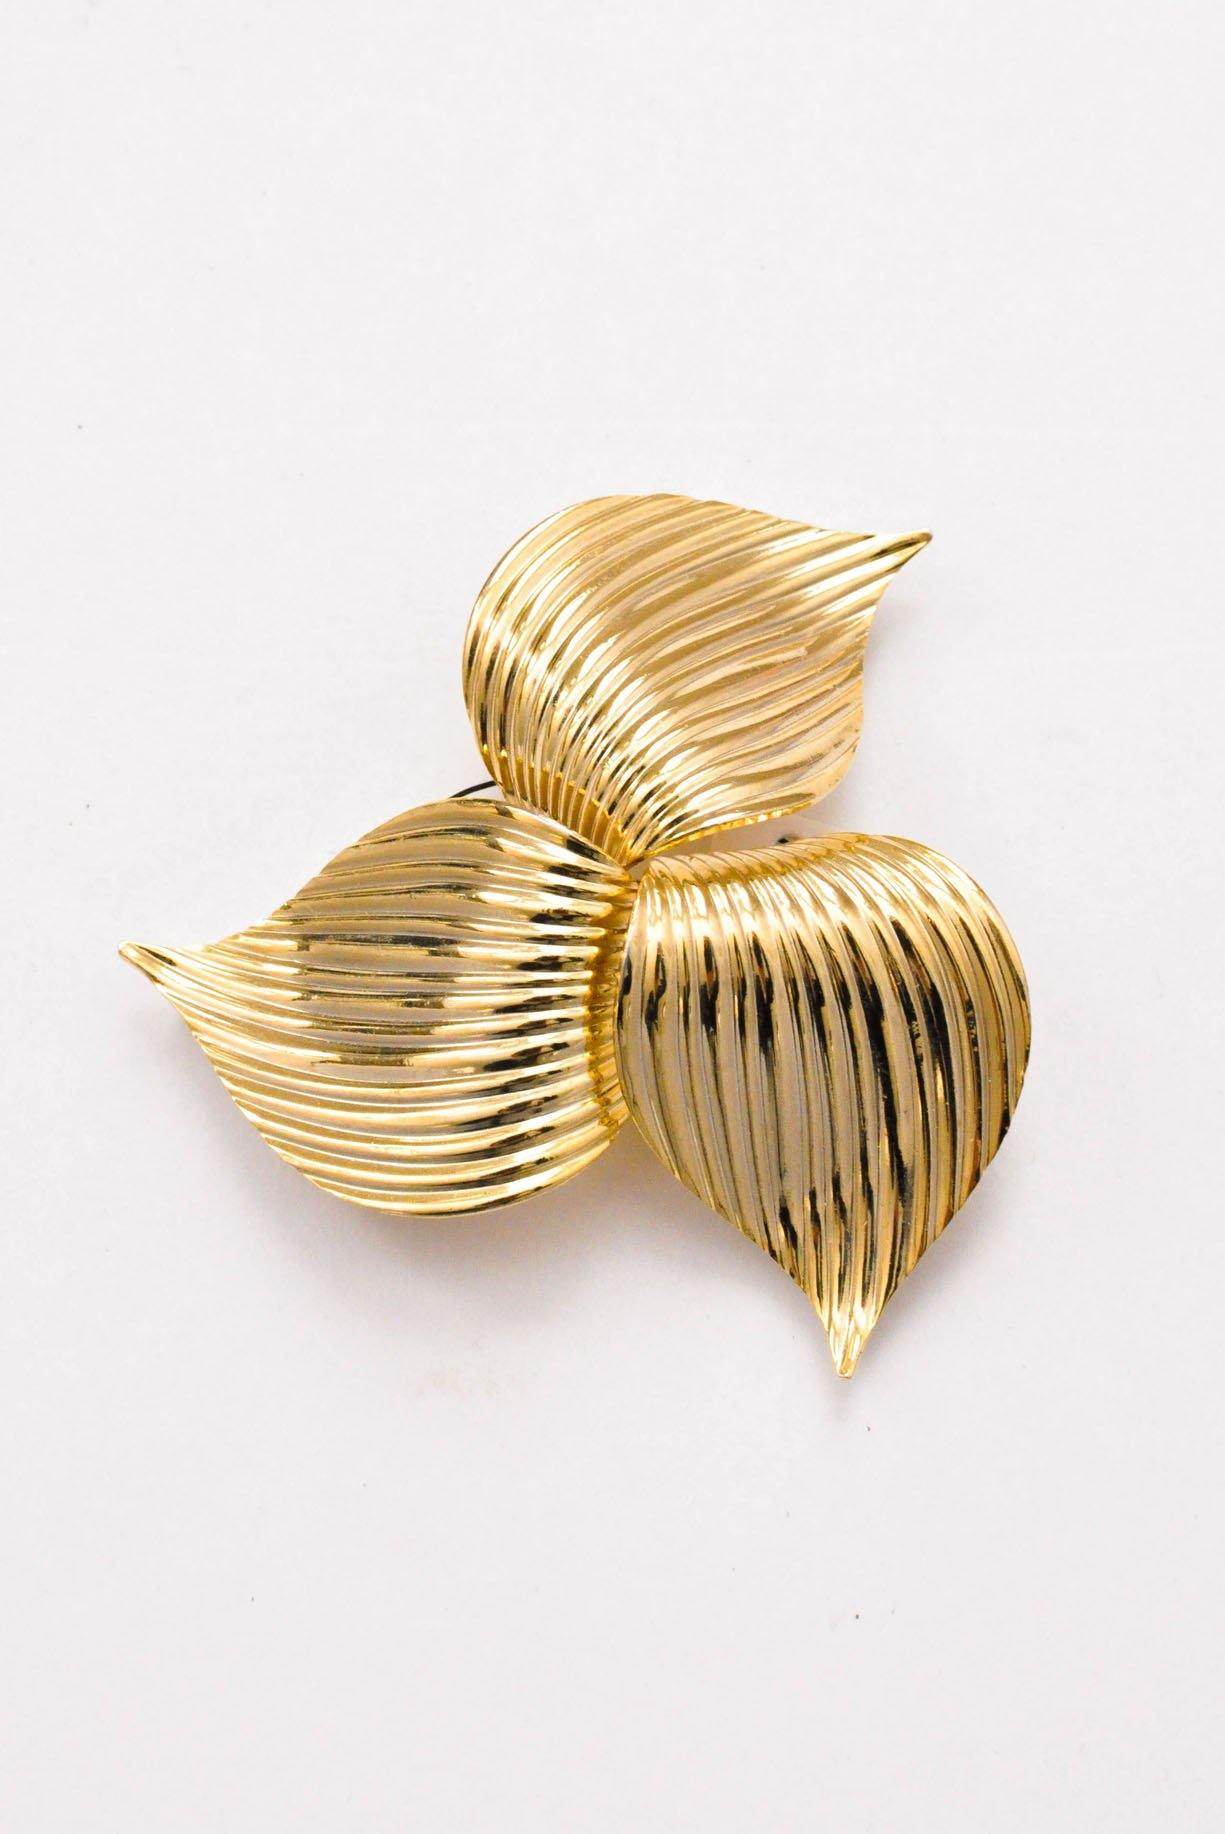 Statement Swirl Brooch - Sweet & Spark